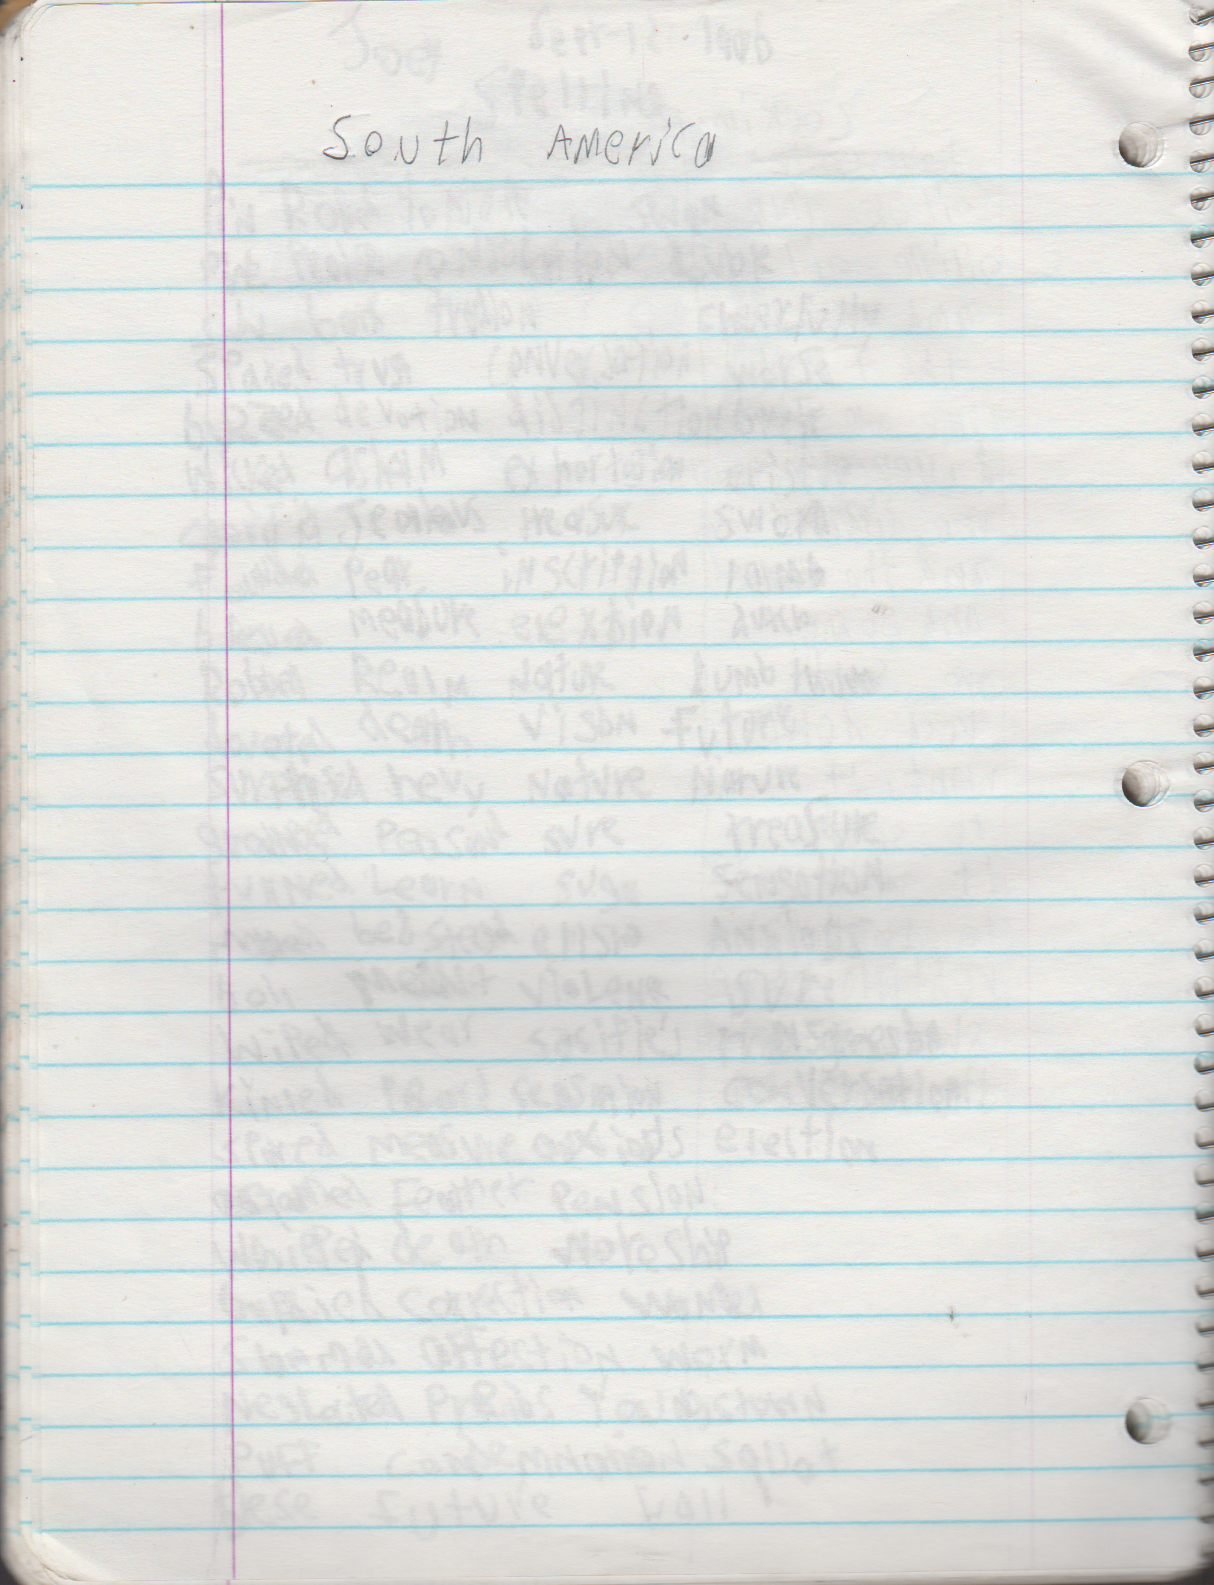 1996-08-18 - Saturday - 11 yr old Joey Arnold's School Book, dates through to 1998 apx, mostly 96, Writings, Drawings, Etc-066.png